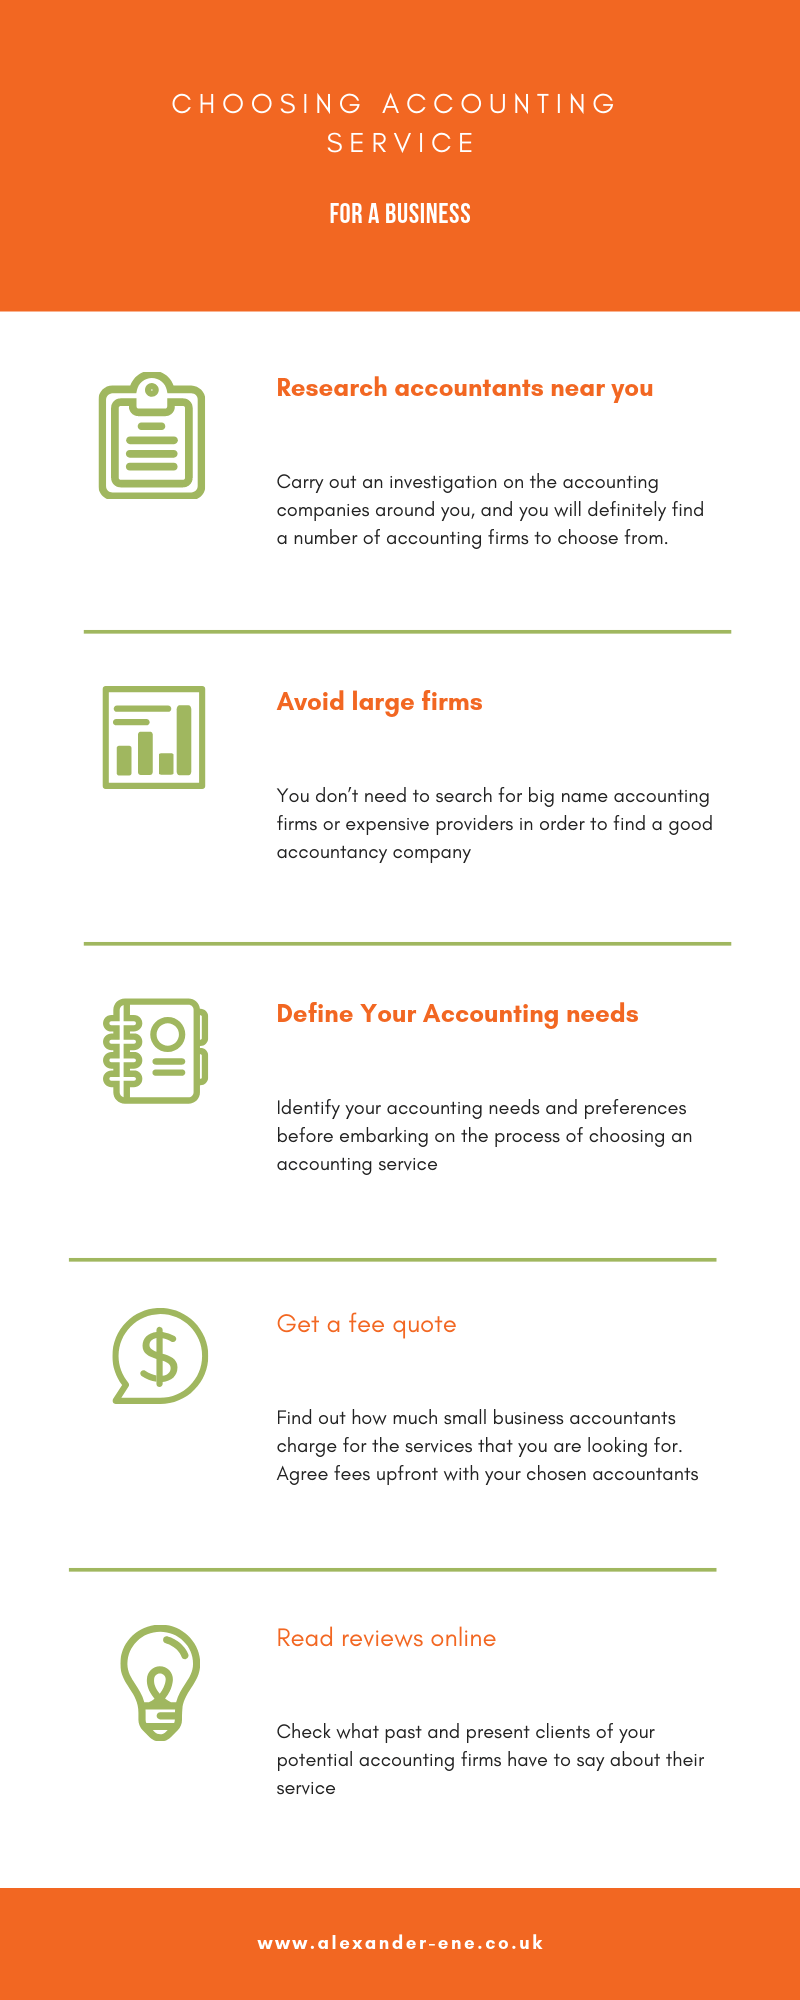 Accounting service for a business